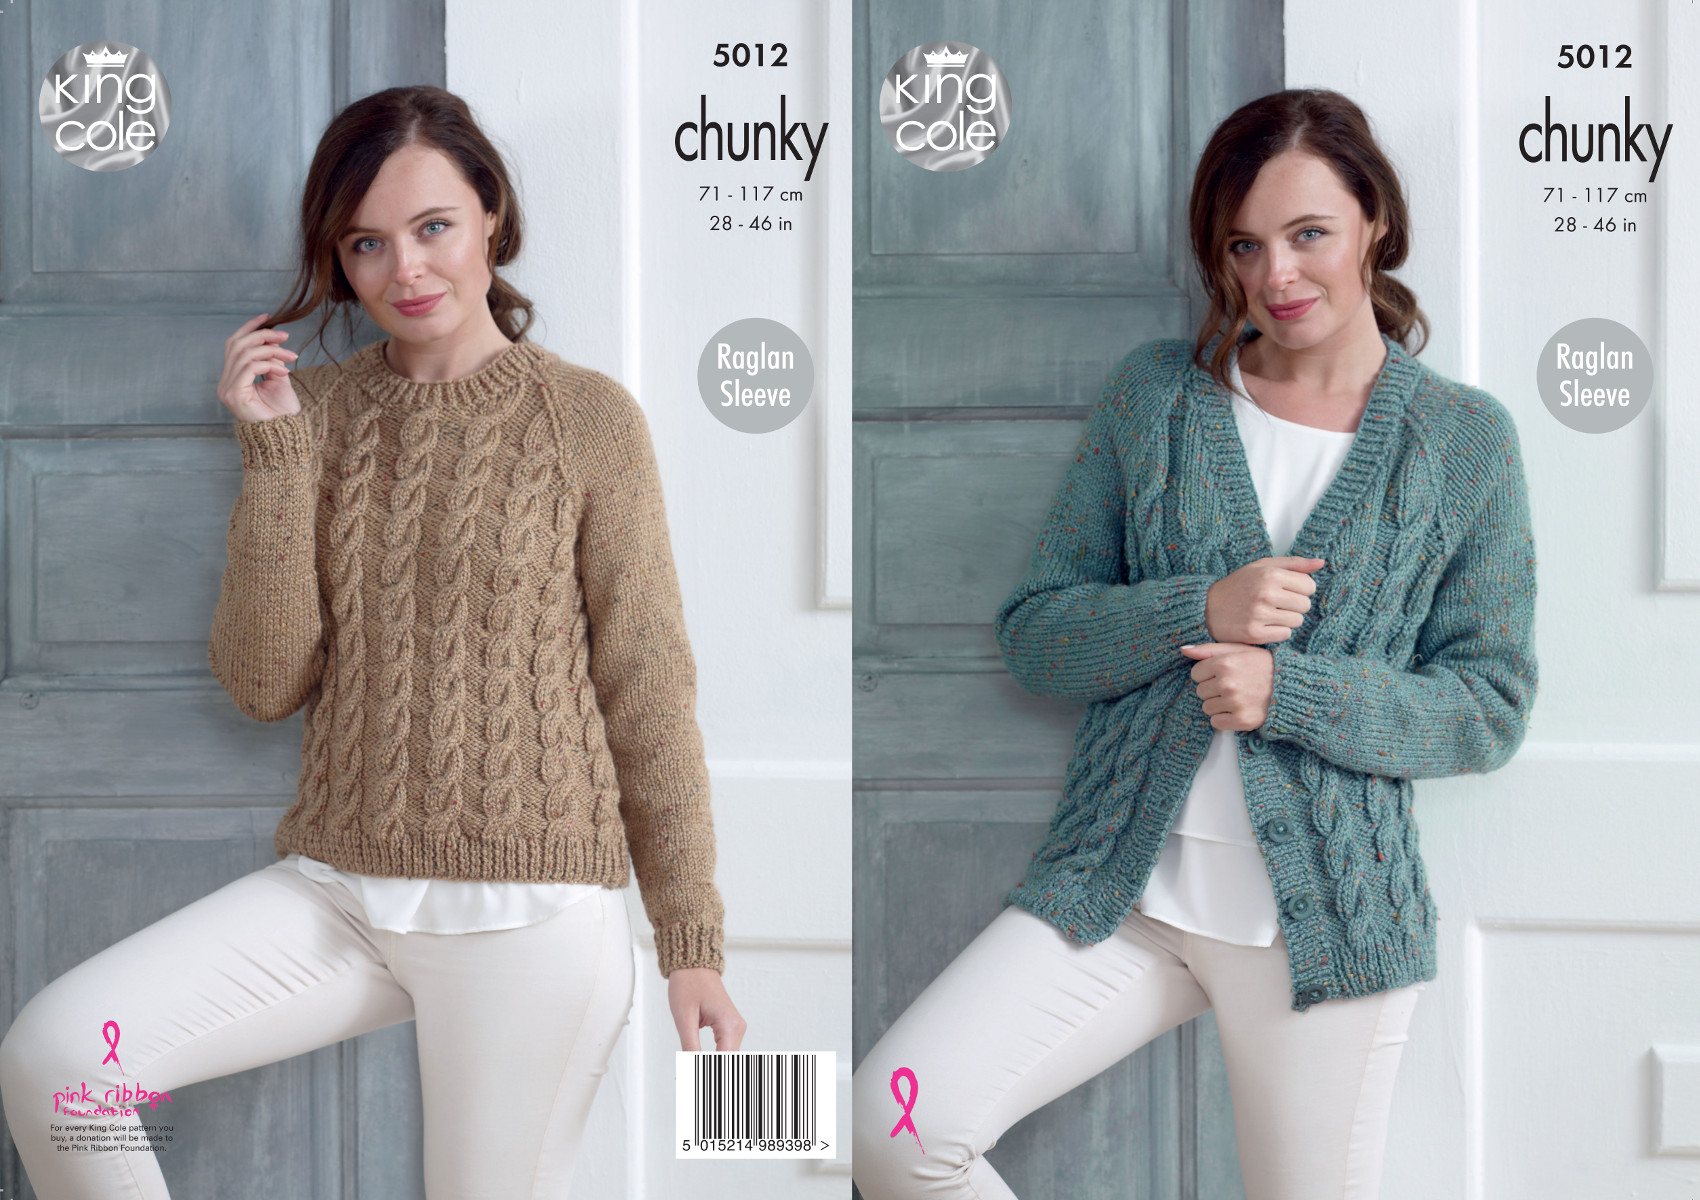 4428ceda4098 Womens Chunky Knitting Pattern Raglan Sleeve Cardigan   Jumper King ...